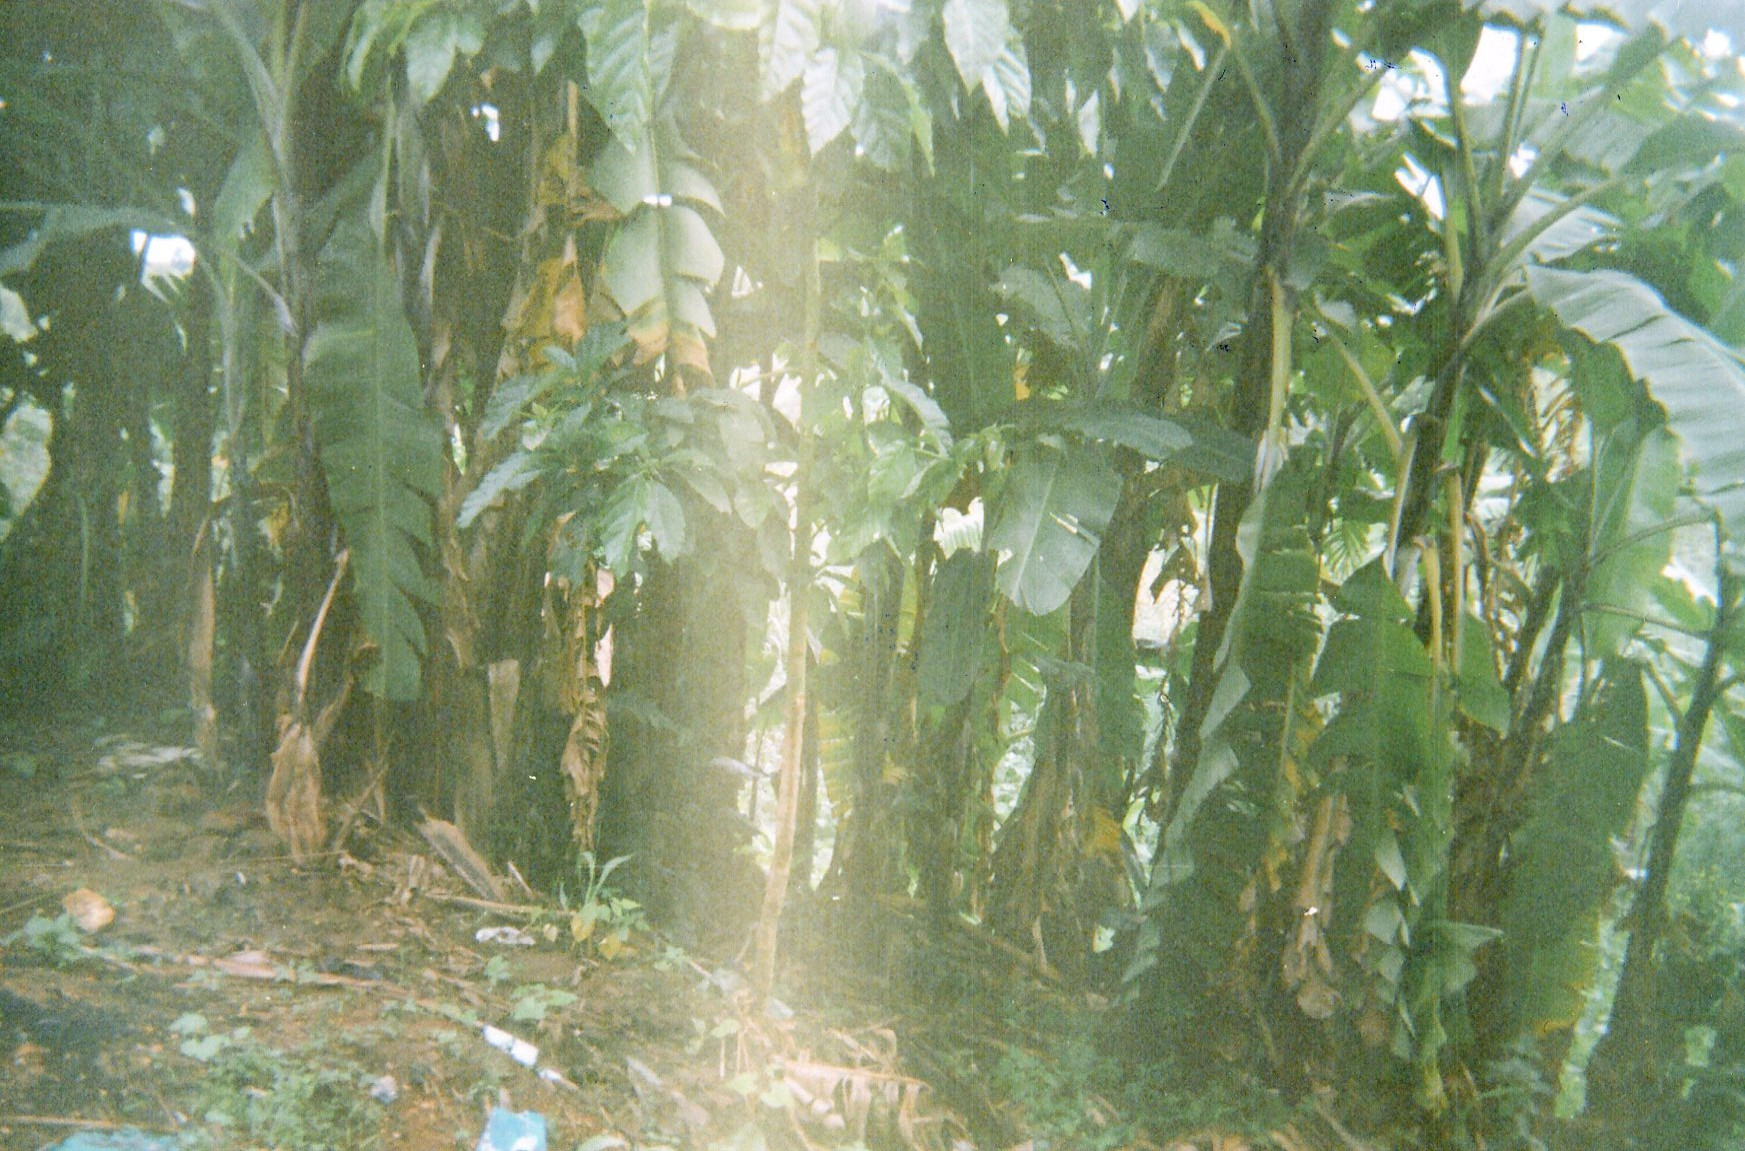 The banana trees are the fruit of our work, it produces food, beer, and construction material.